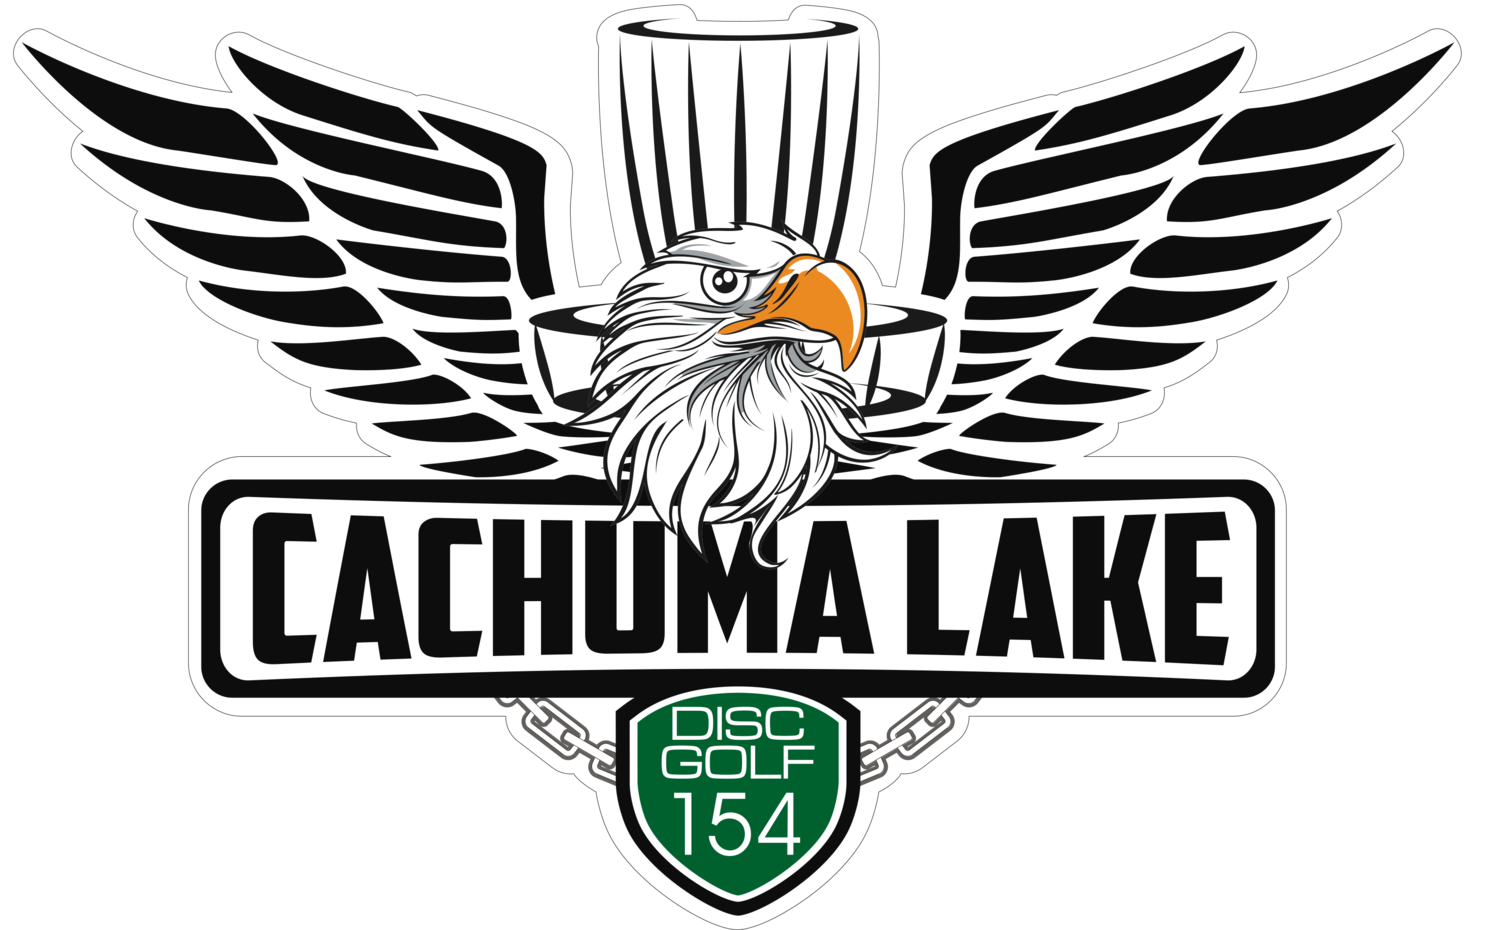 Cachuma Lake Disc Golf Course